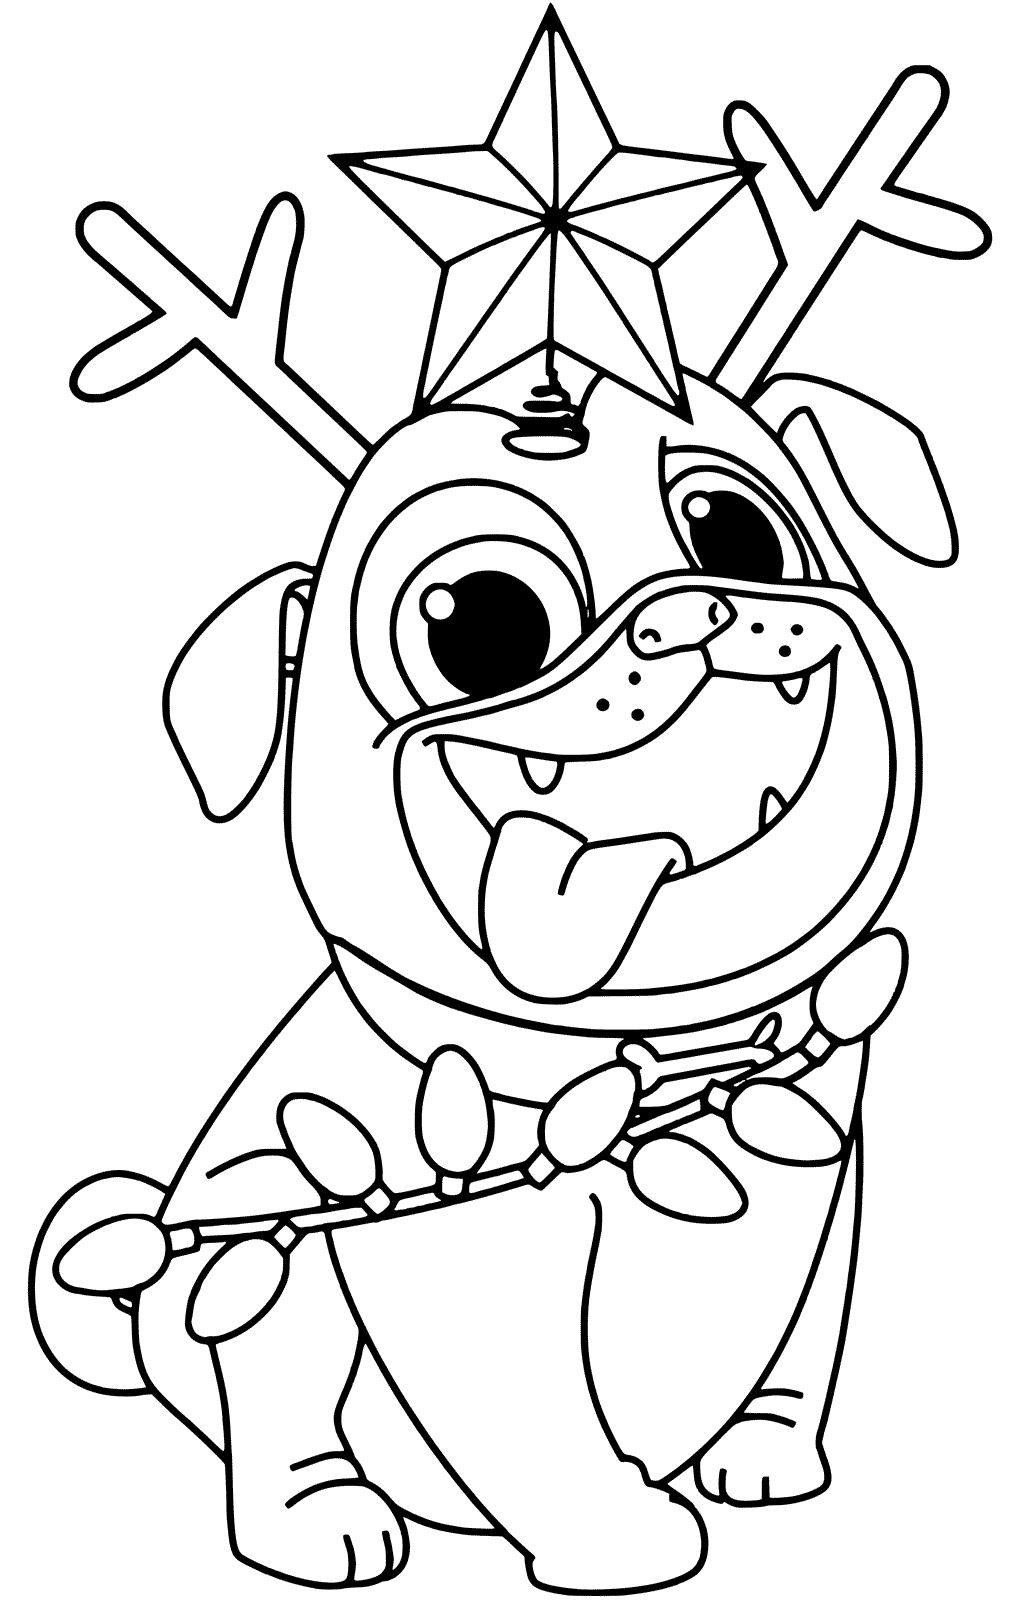 christmas dog coloring pages cute christmas puppy coloring pages at getdrawings free dog pages christmas coloring